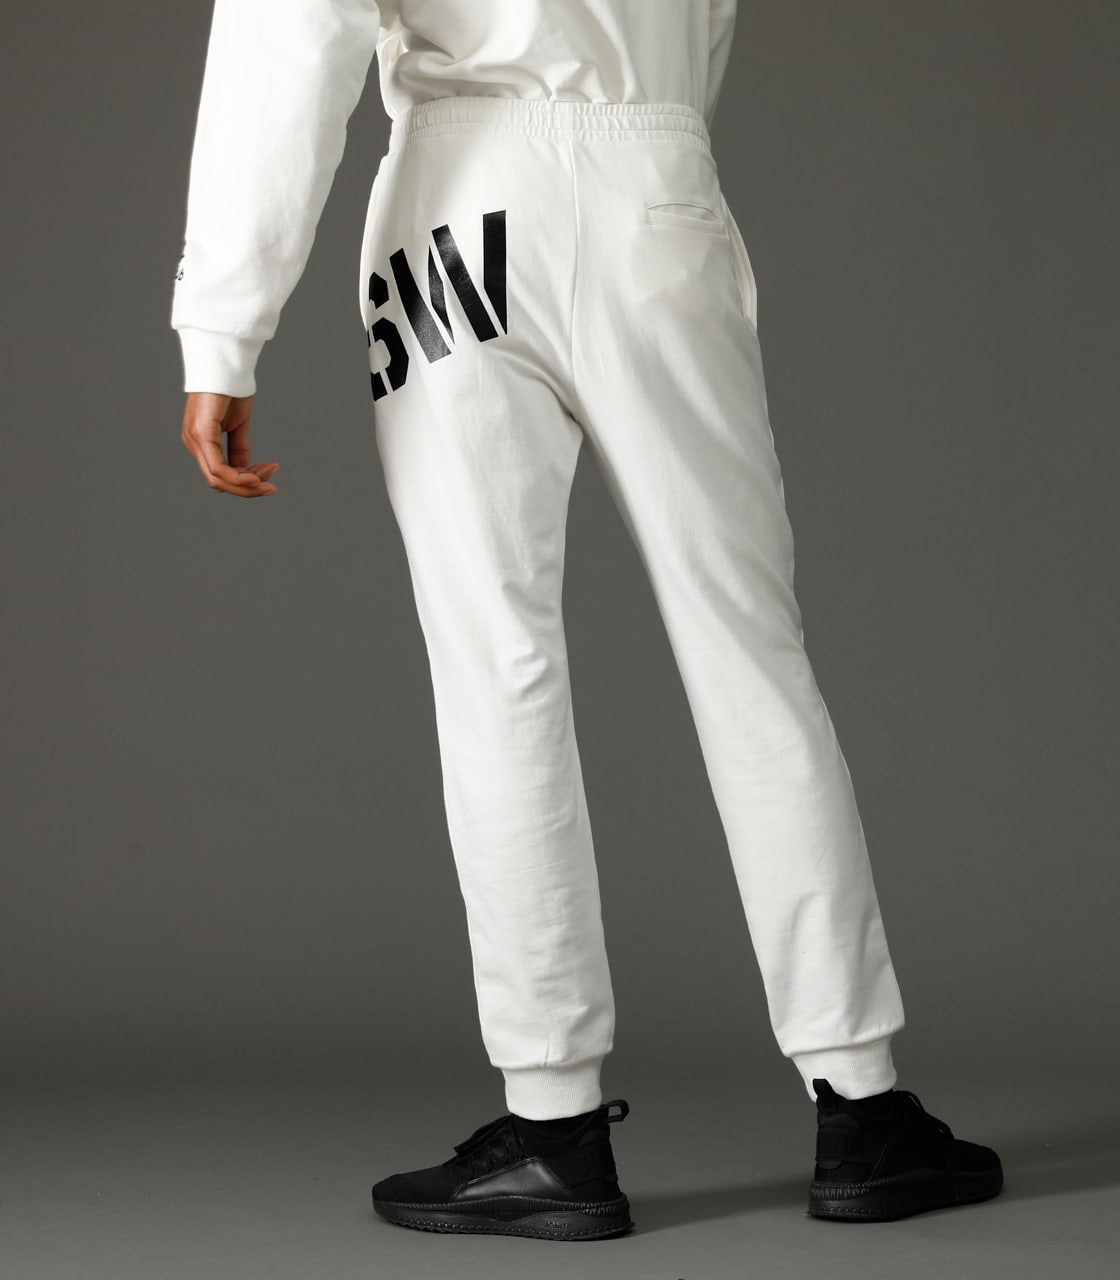 CLUB AZUL STRETCH PANTS 詳細画像 WHT 3